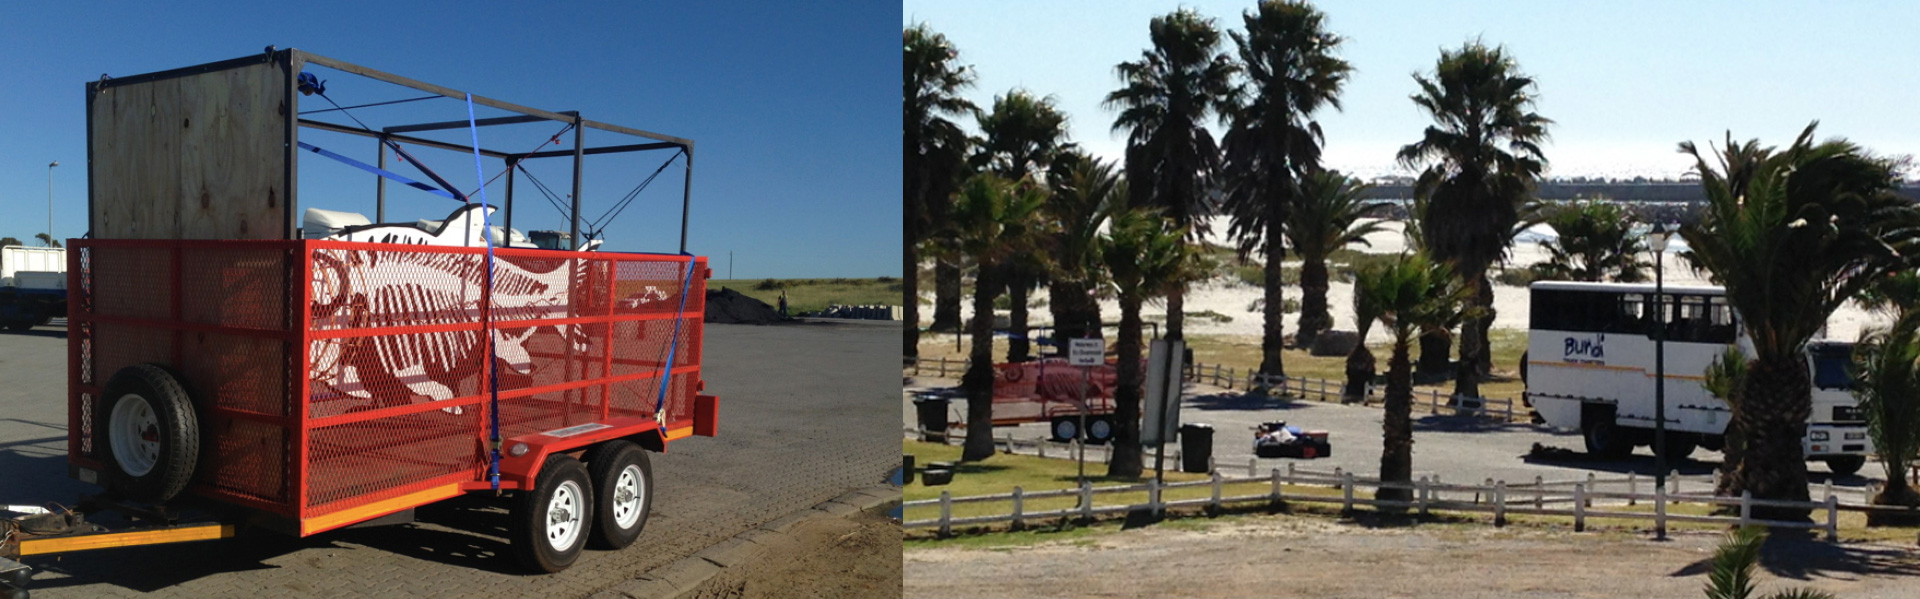 Images depict the tigerfish as it travels from Cape Town to Lambert's Bay. Left the fish and cage is ractchet strapped to a trailer; right the bus travels through a row of palm trees